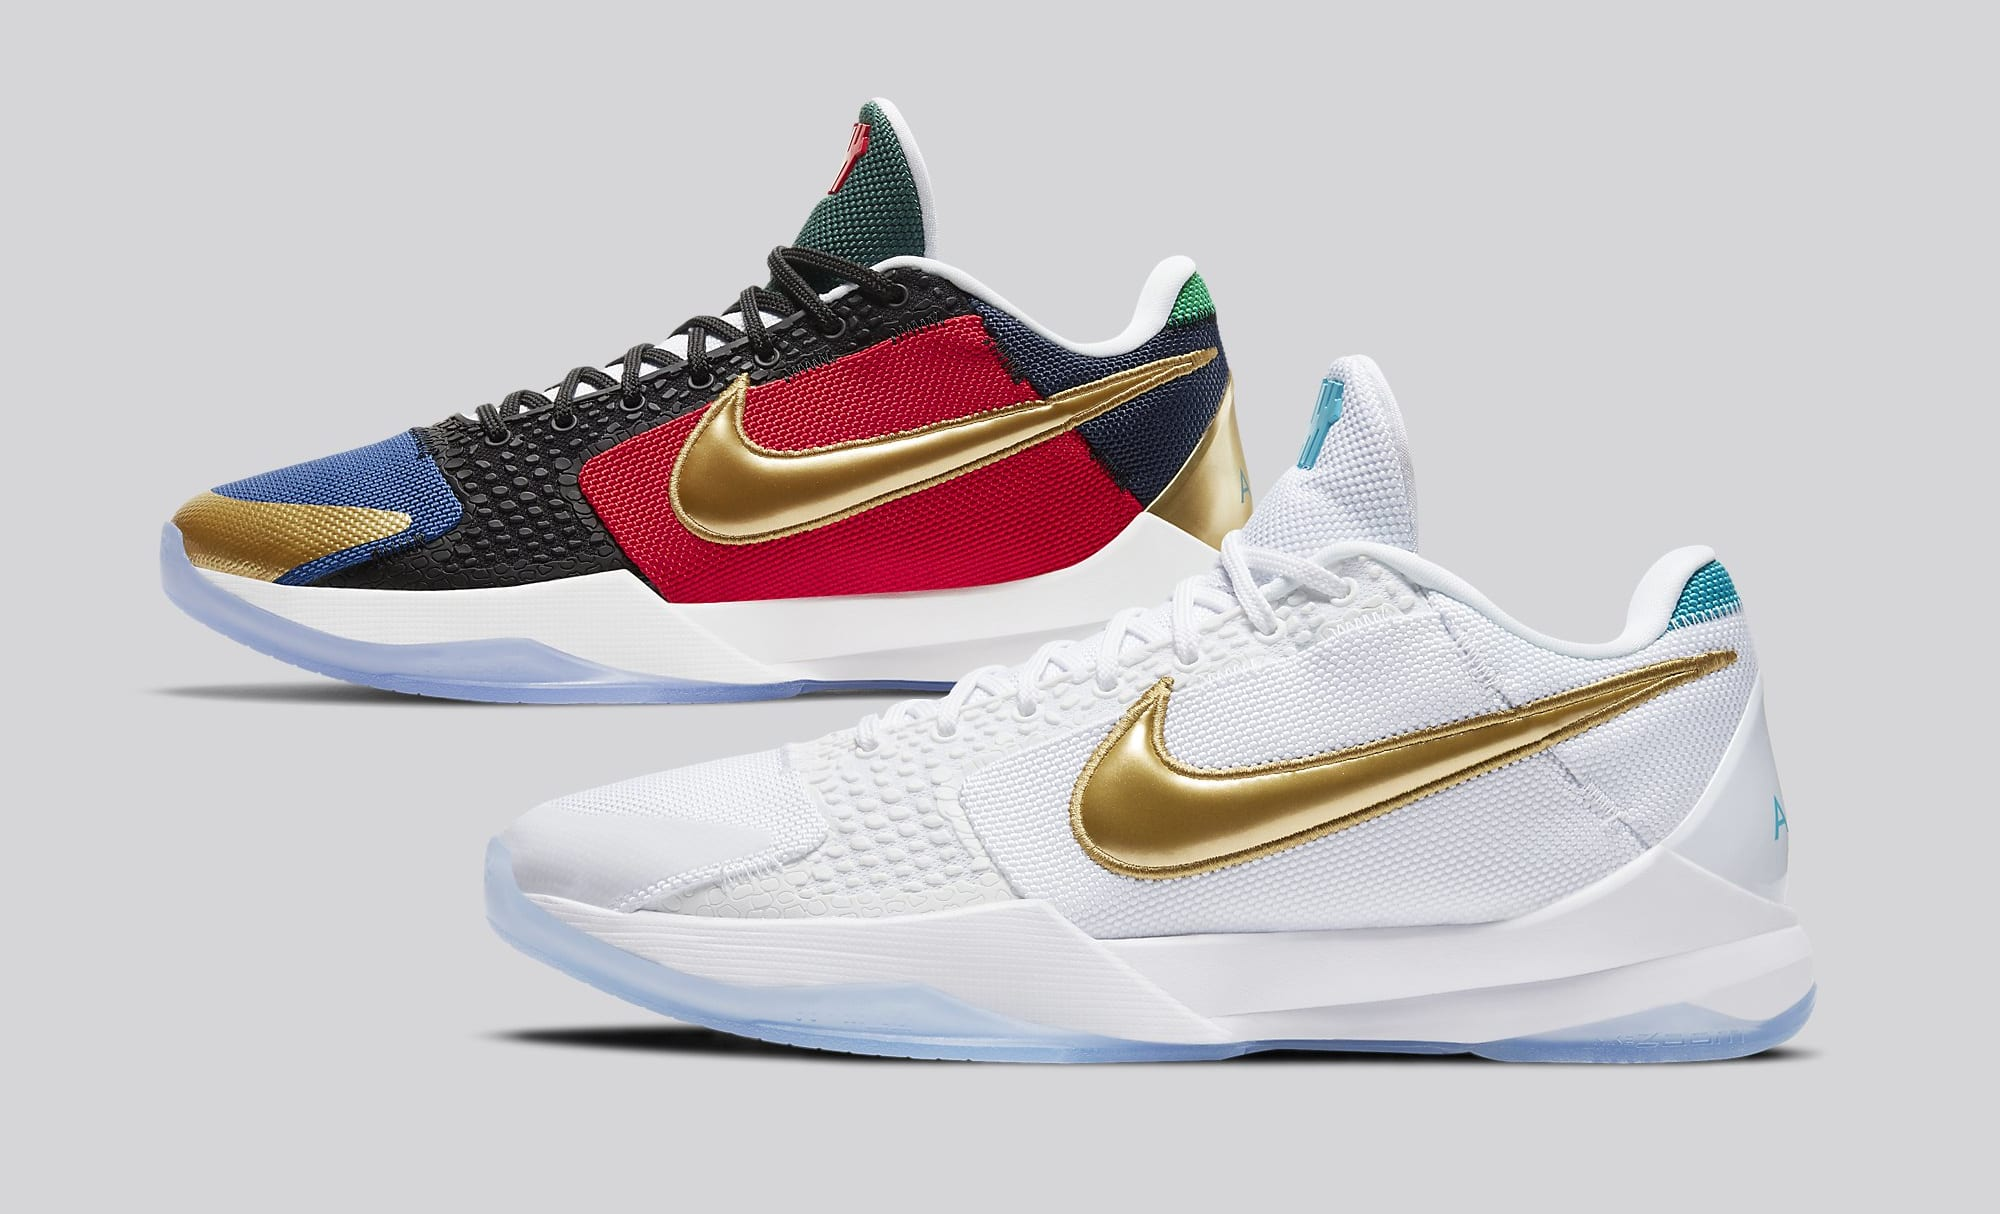 Undefeated x Nike Kobe 5 Protro 'What If' Pack DB5551-900 Lateral